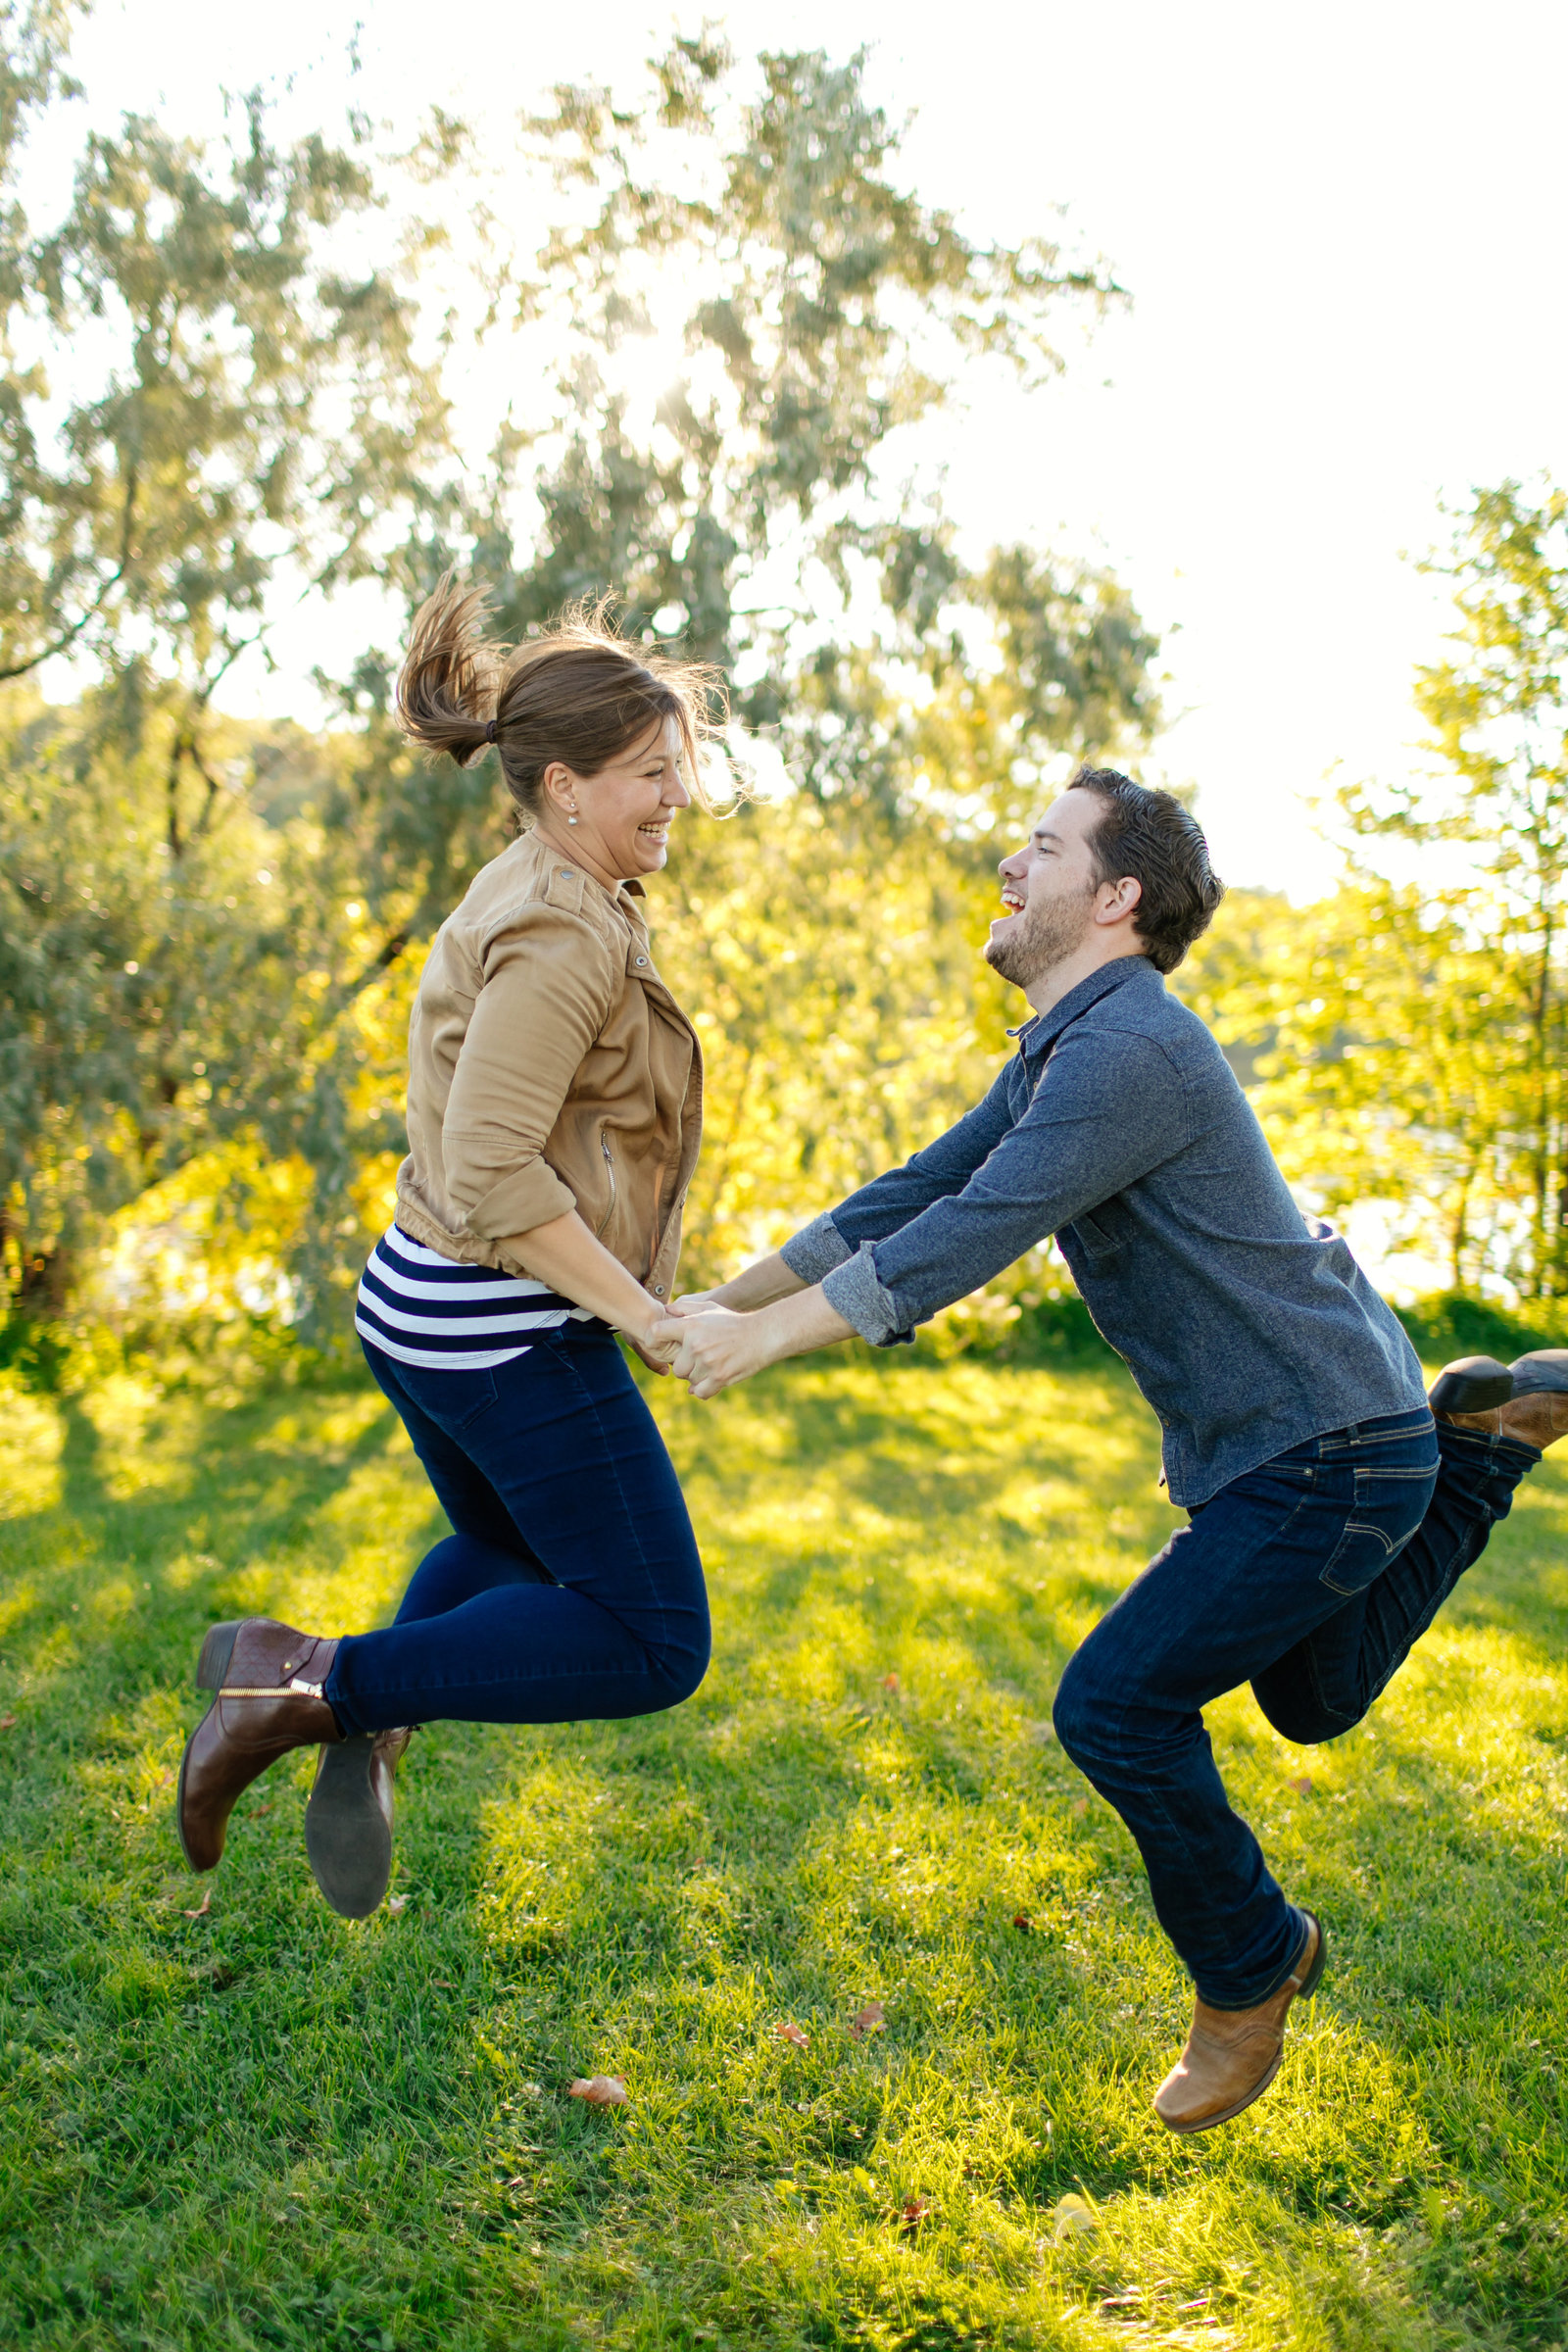 Sarah Tim Engagement-Sarah Tim Engagement-0092